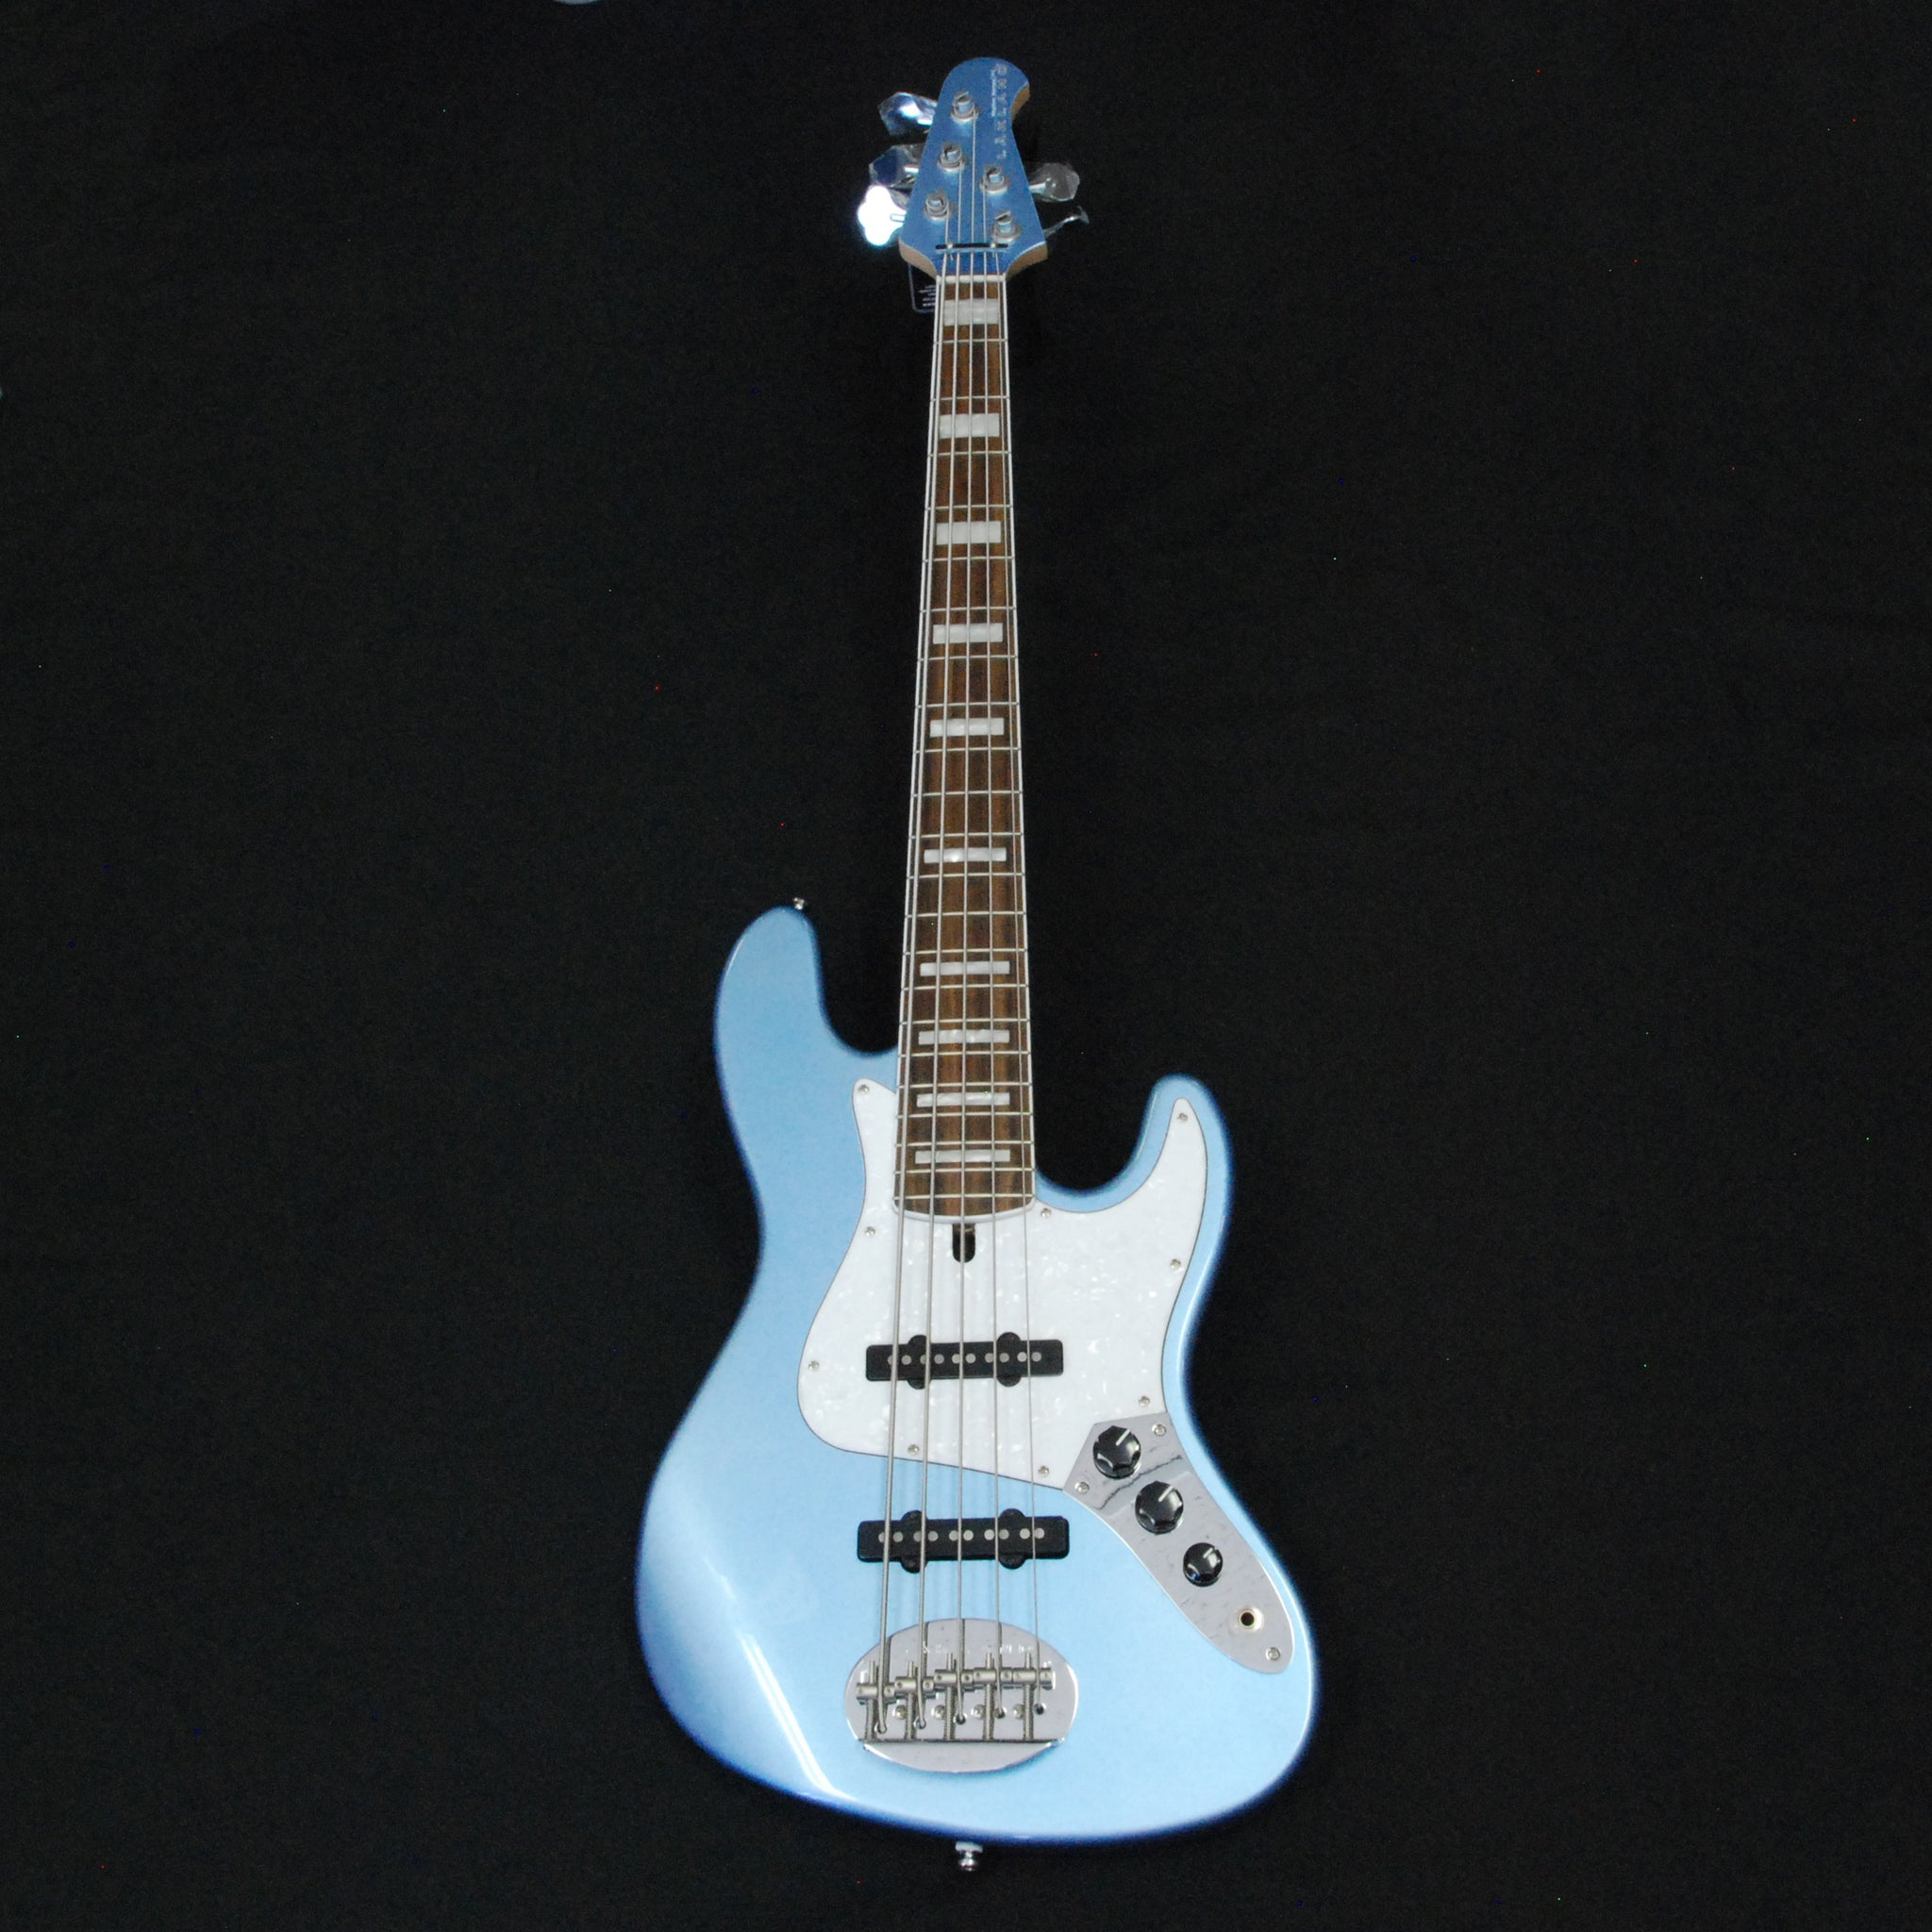 Shop online for Lakland Skyline Series 55-60 Custom Lake Placid Blue 5 String Jazz Bass Guitar [191019099] today.  Now available for purchase from Midlothian Music of Orland Park, Illinois, USA